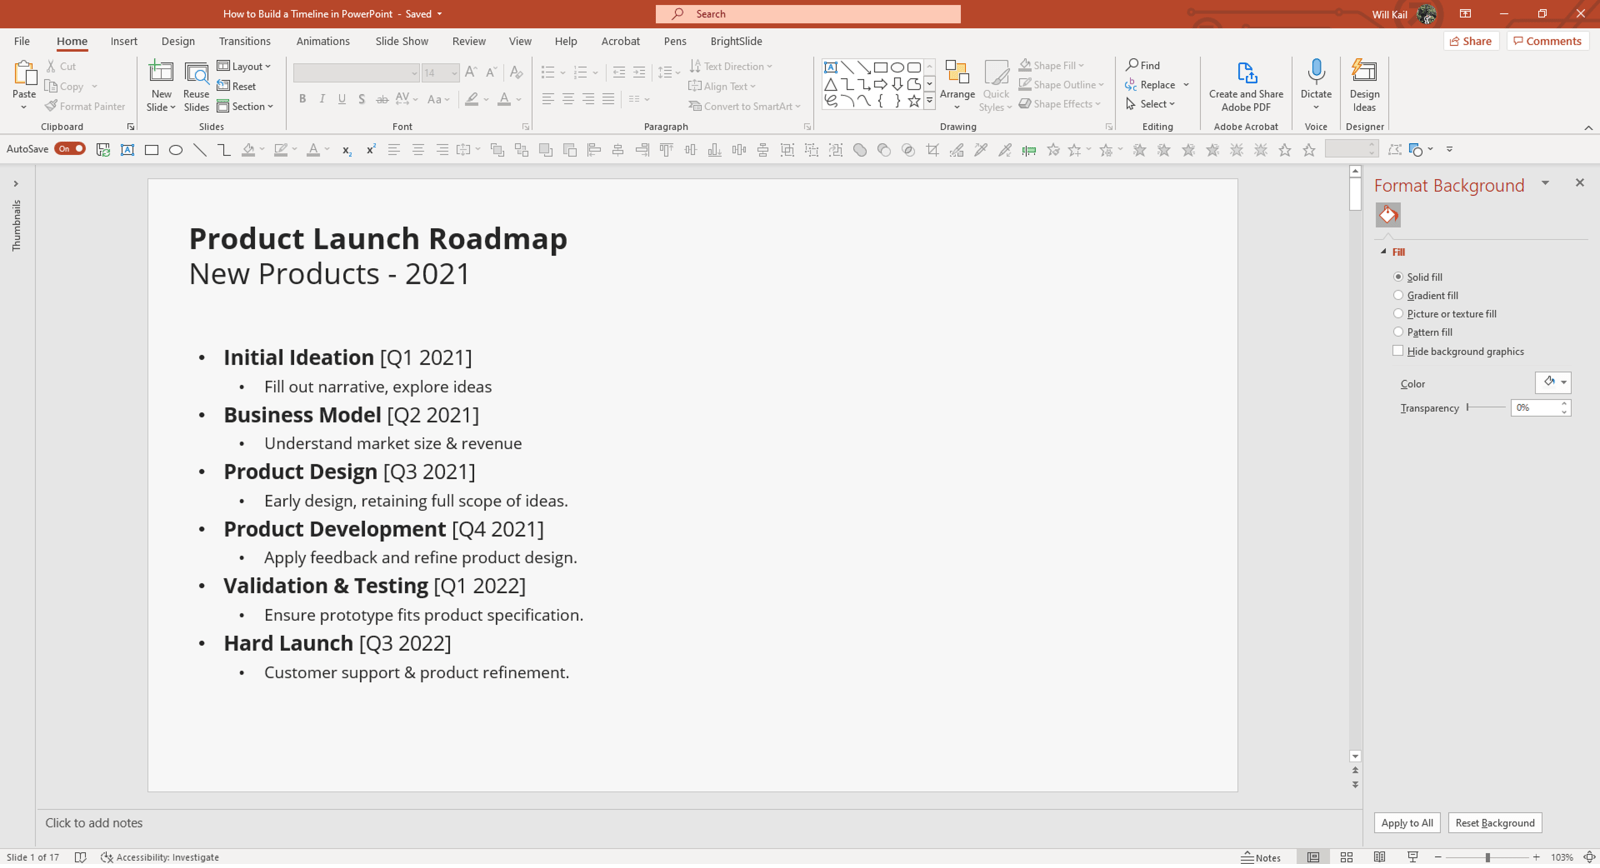 Screenshot of PowerPoint in edit mode showing a bulleted timeline with six events. Each event has a title in bold, date, and one line description.